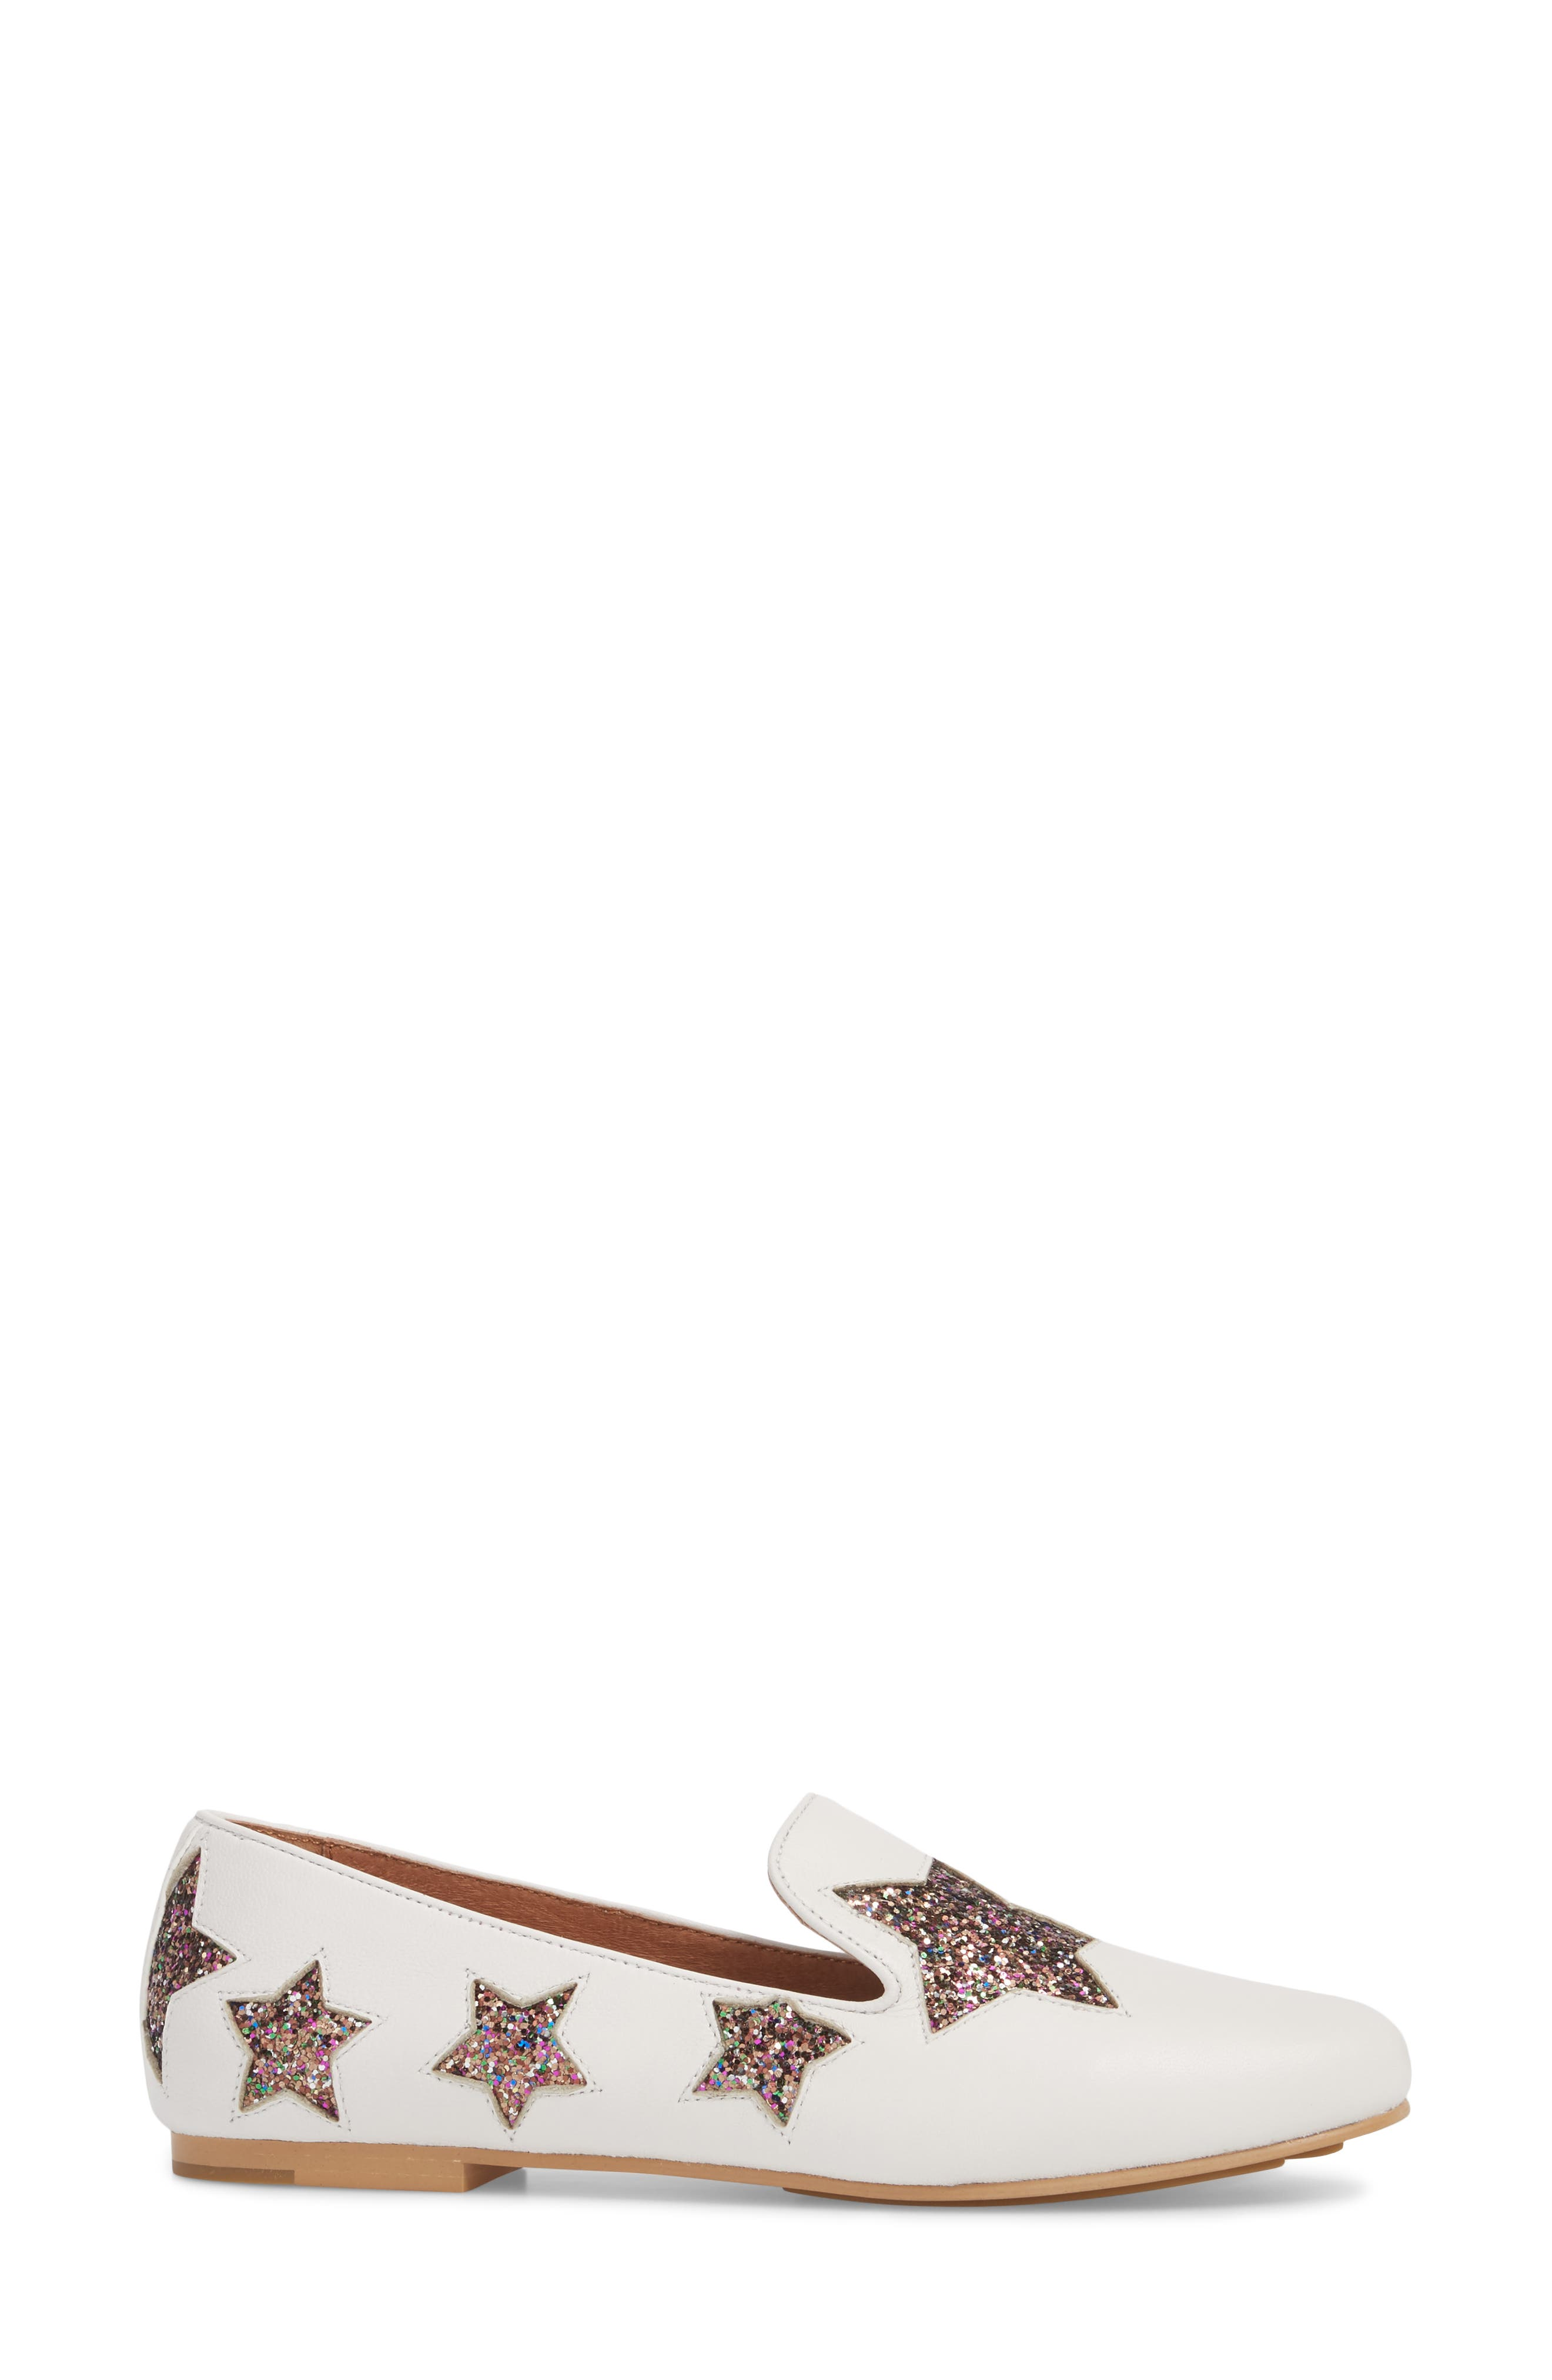 GENTLE SOULS BY KENNETH COLE, Eugene Stars Flat, Alternate thumbnail 3, color, WHITE STARS LEATHER